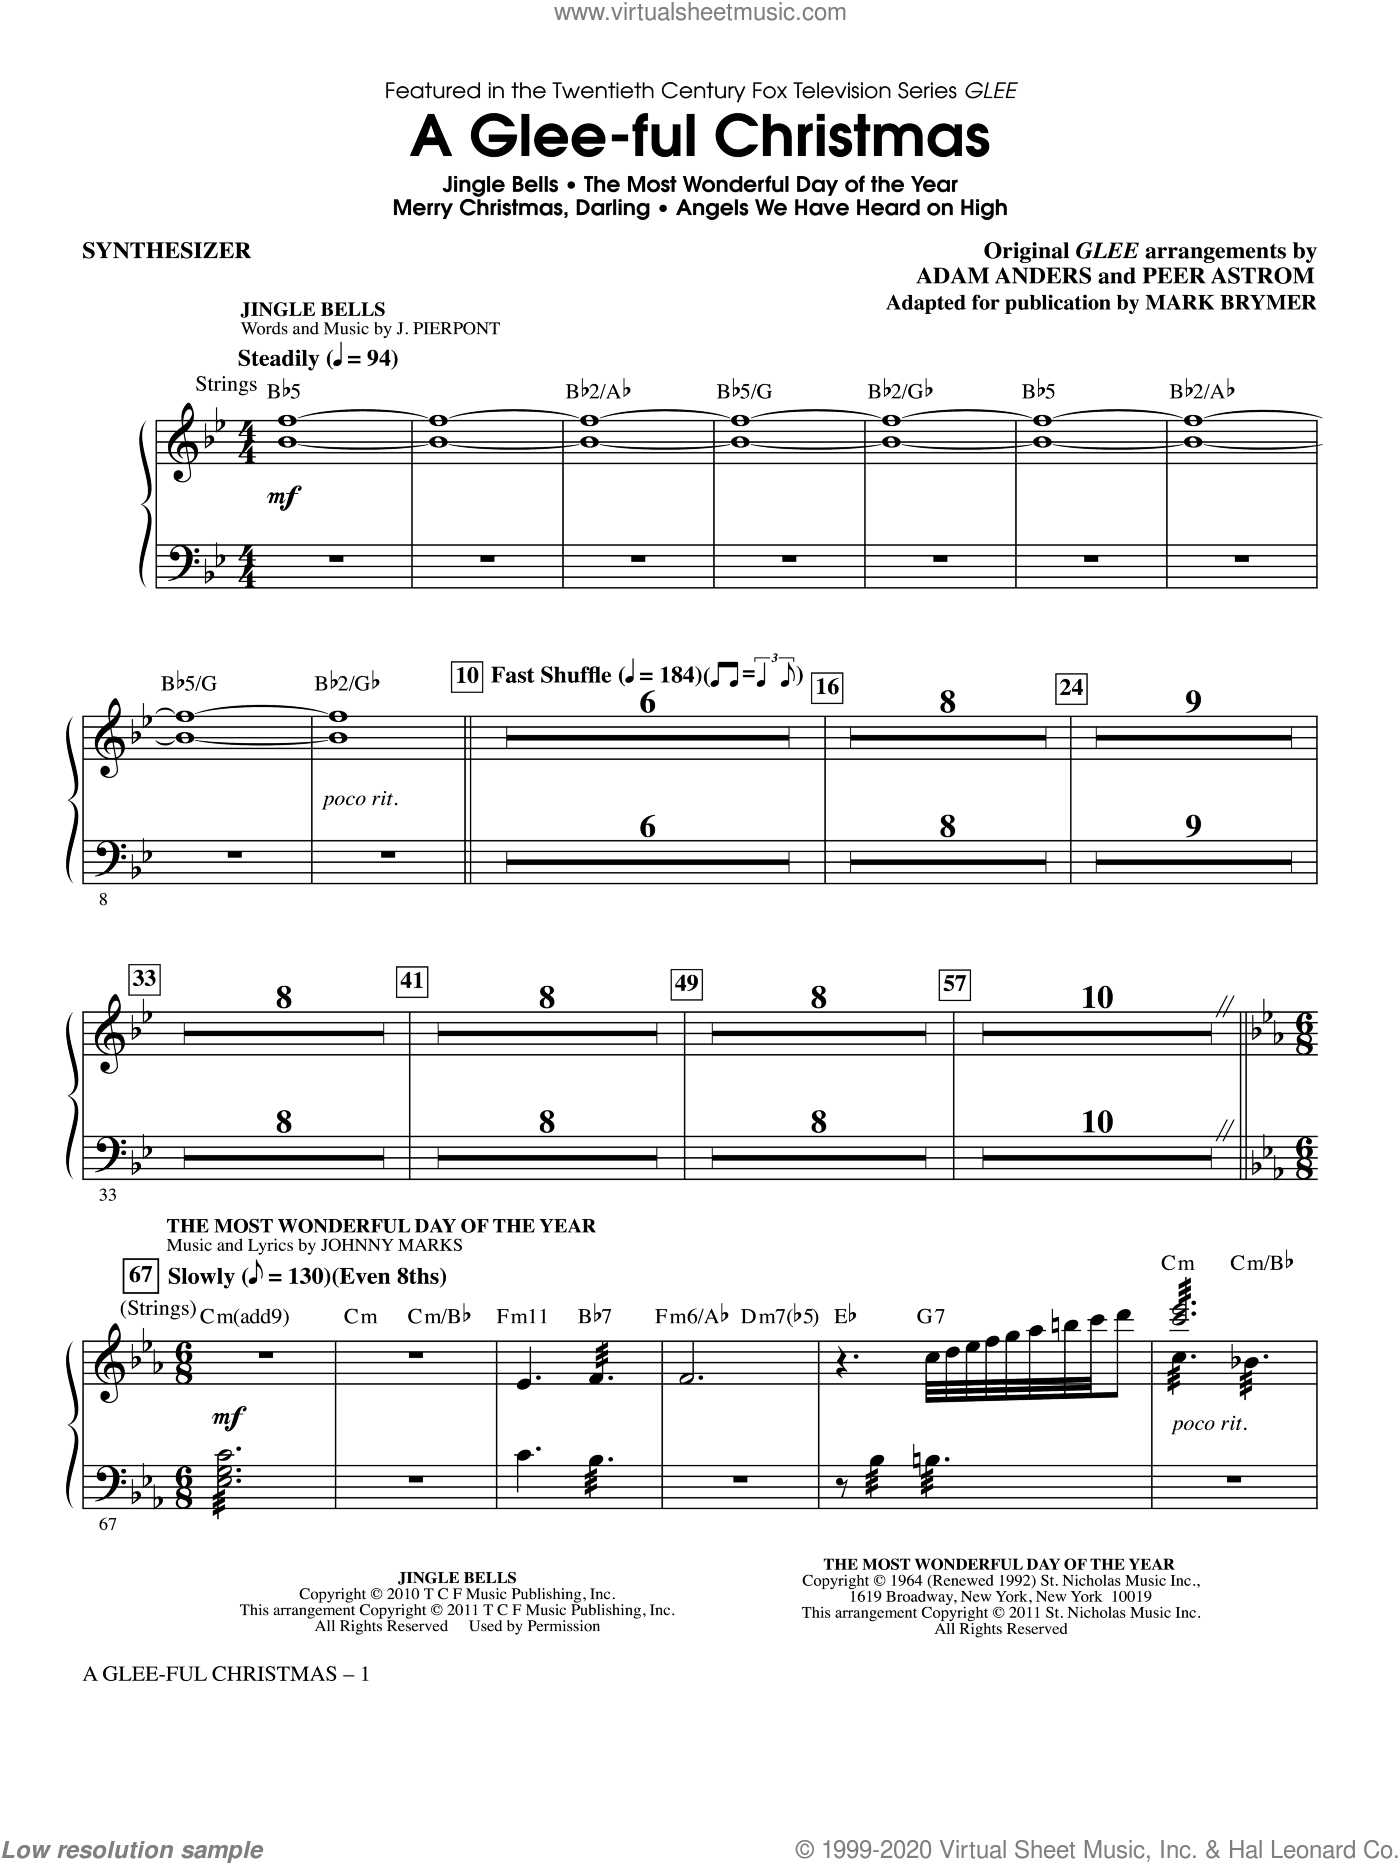 A Glee-ful Christmas (Choral Medley)(arr. Mark Brymer) sheet music for orchestra/band (synthesizer) by Mark Brymer, Adam Anders, Glee Cast, James Chadwick, Miscellaneous and Peer Astrom, intermediate skill level